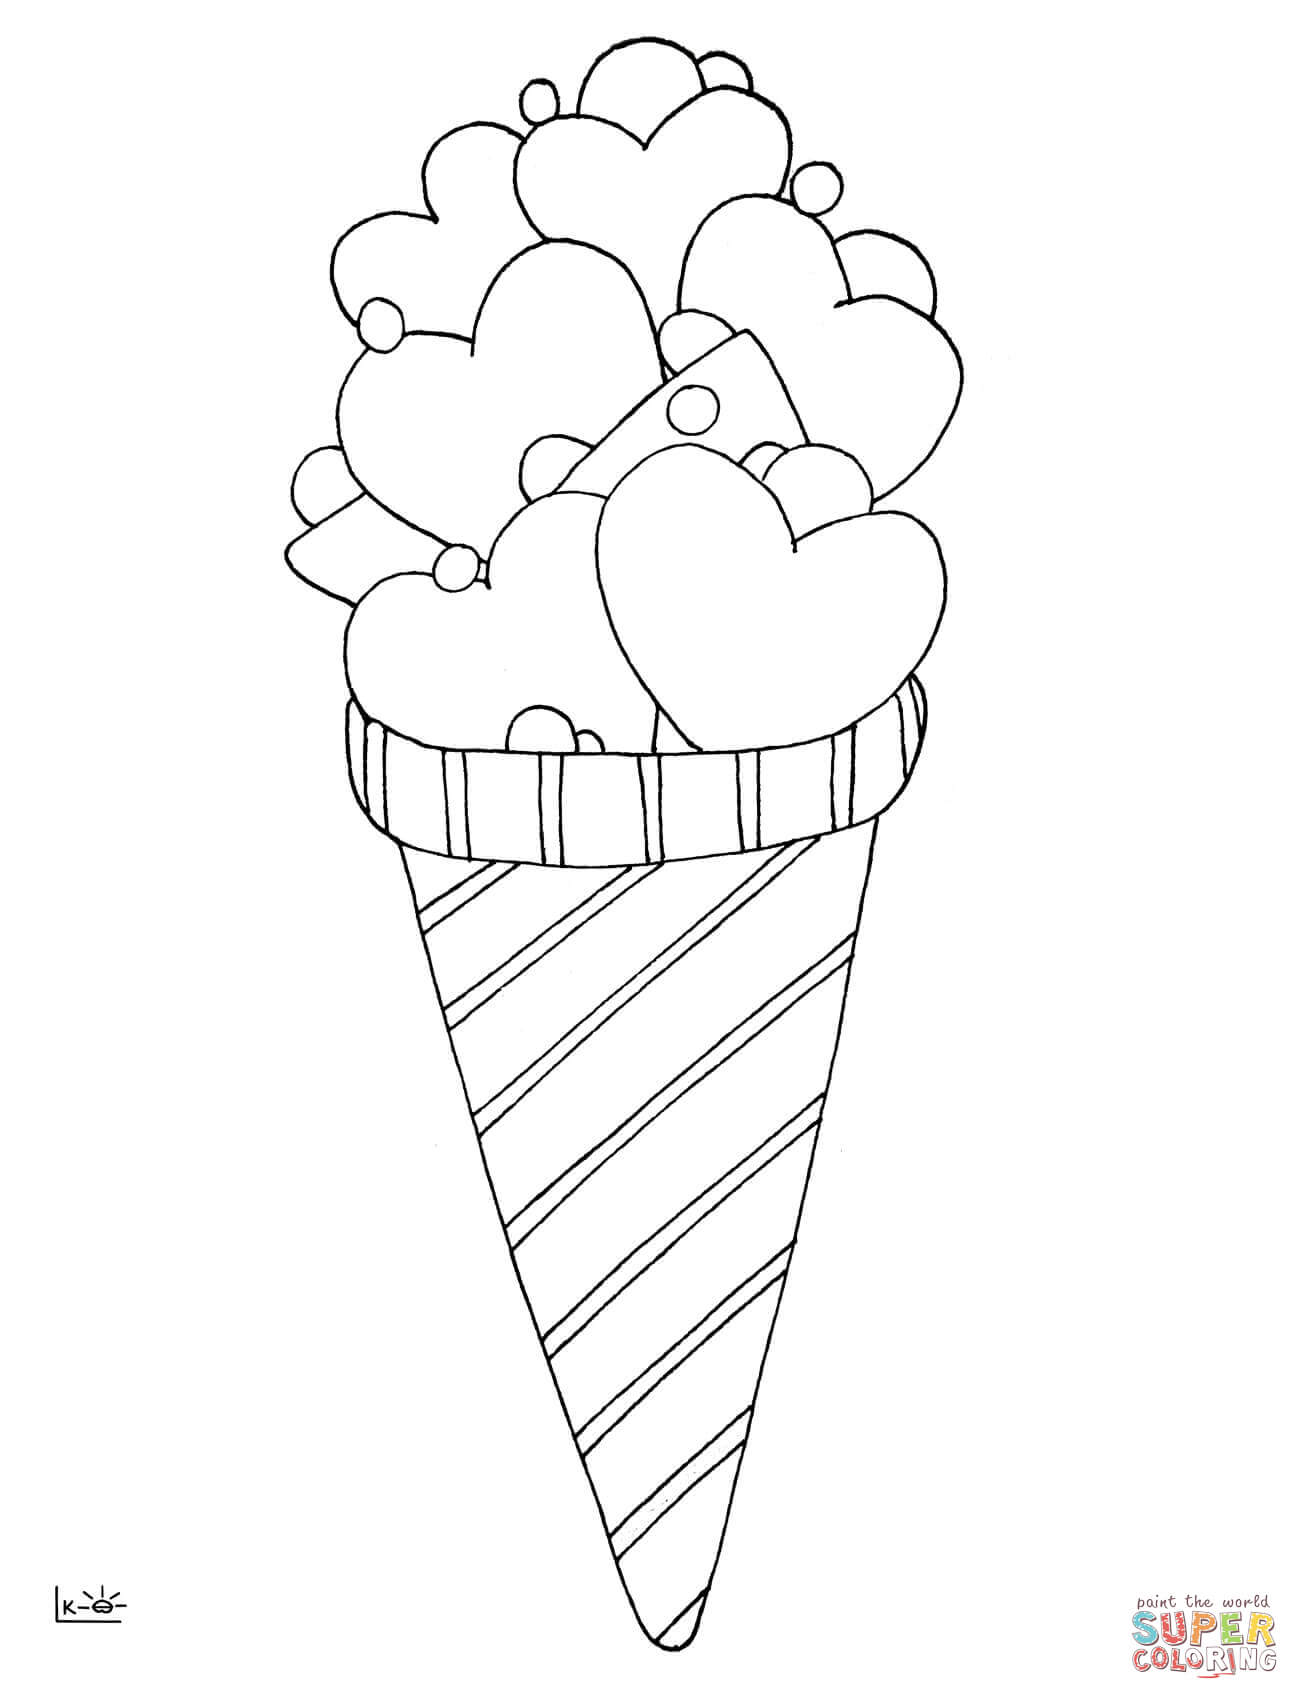 Cone coloring #3, Download drawings